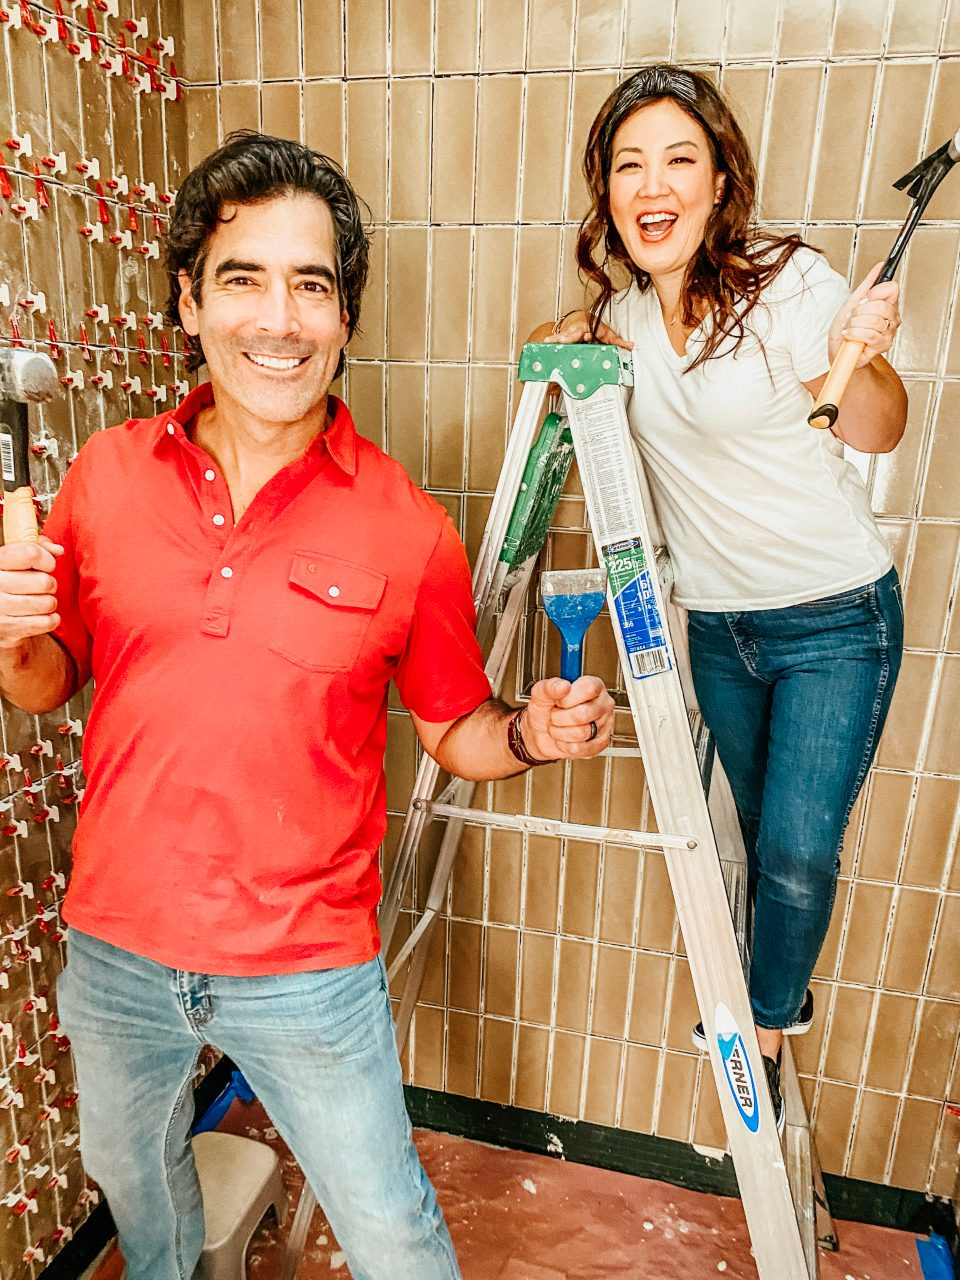 Anita & Carter pose with tools in the tiled shower